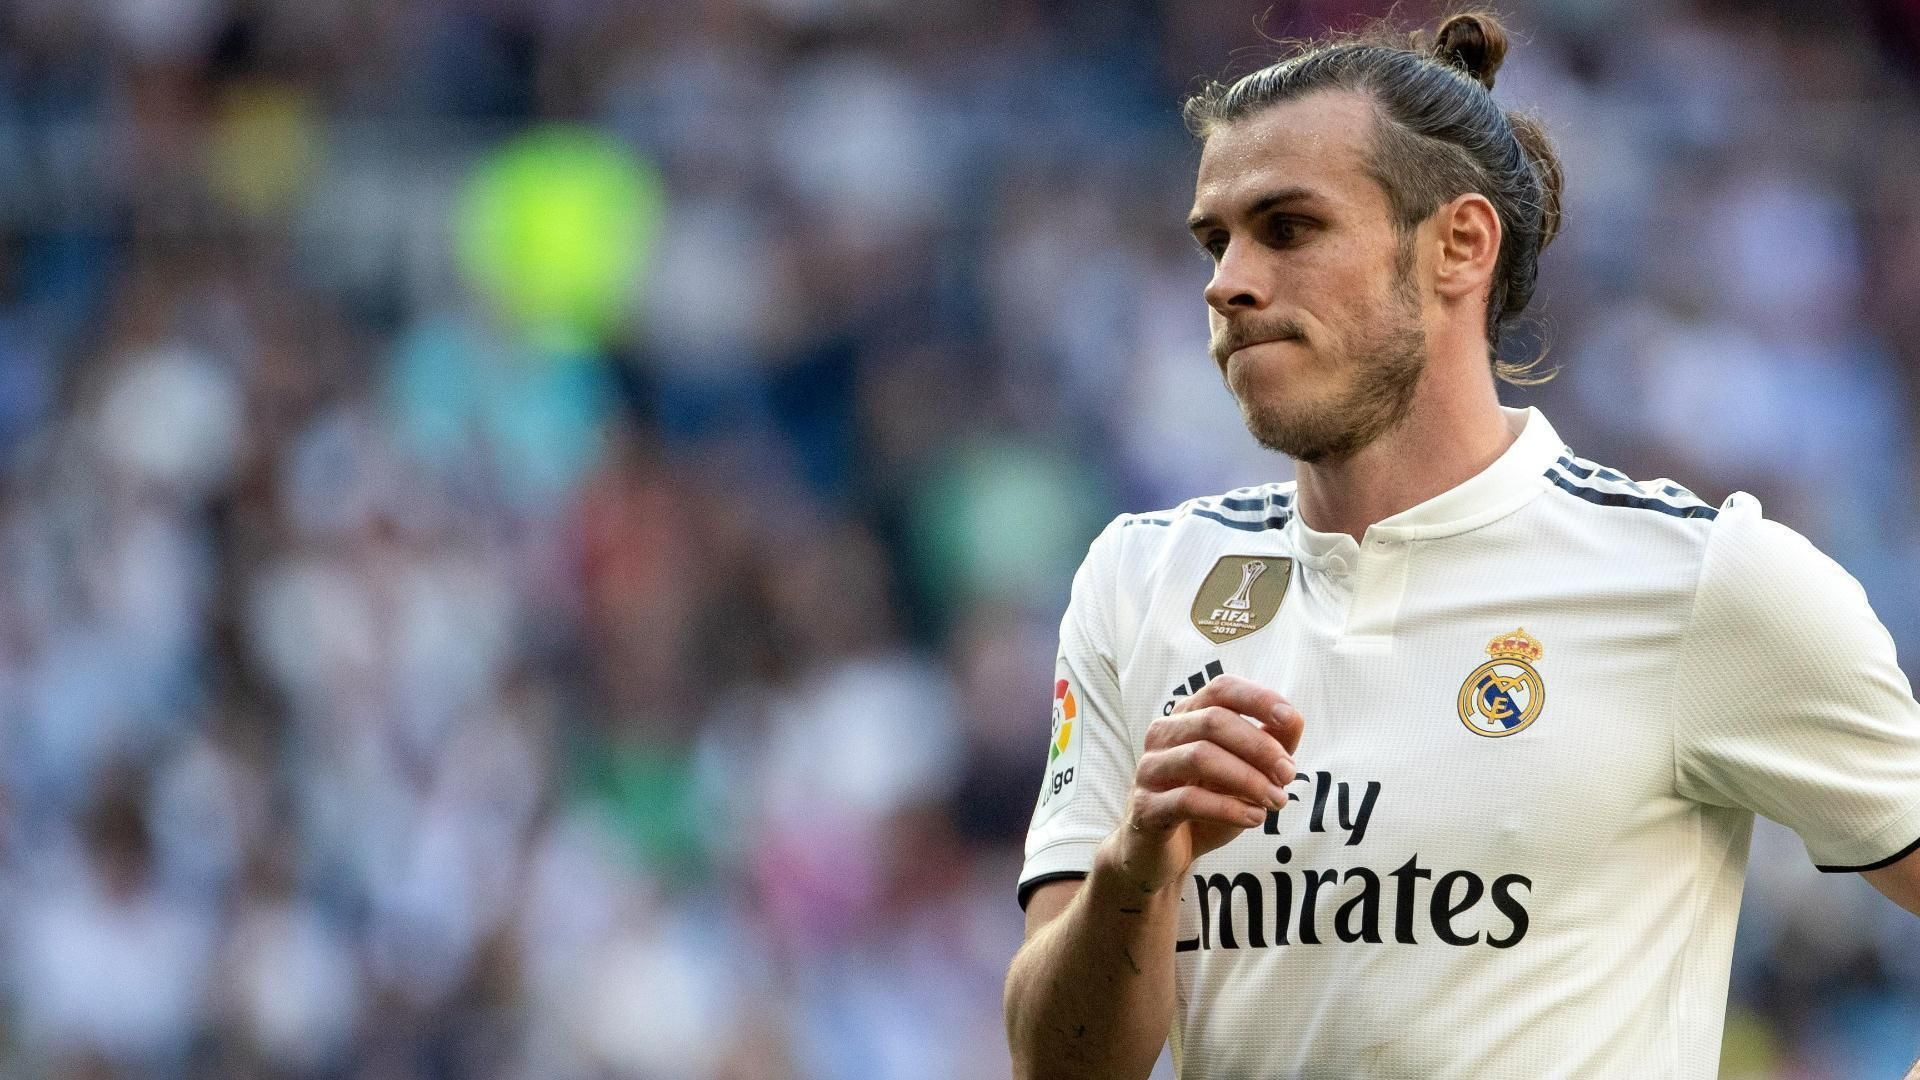 Is there life after Real Madrid for Gareth Bale?